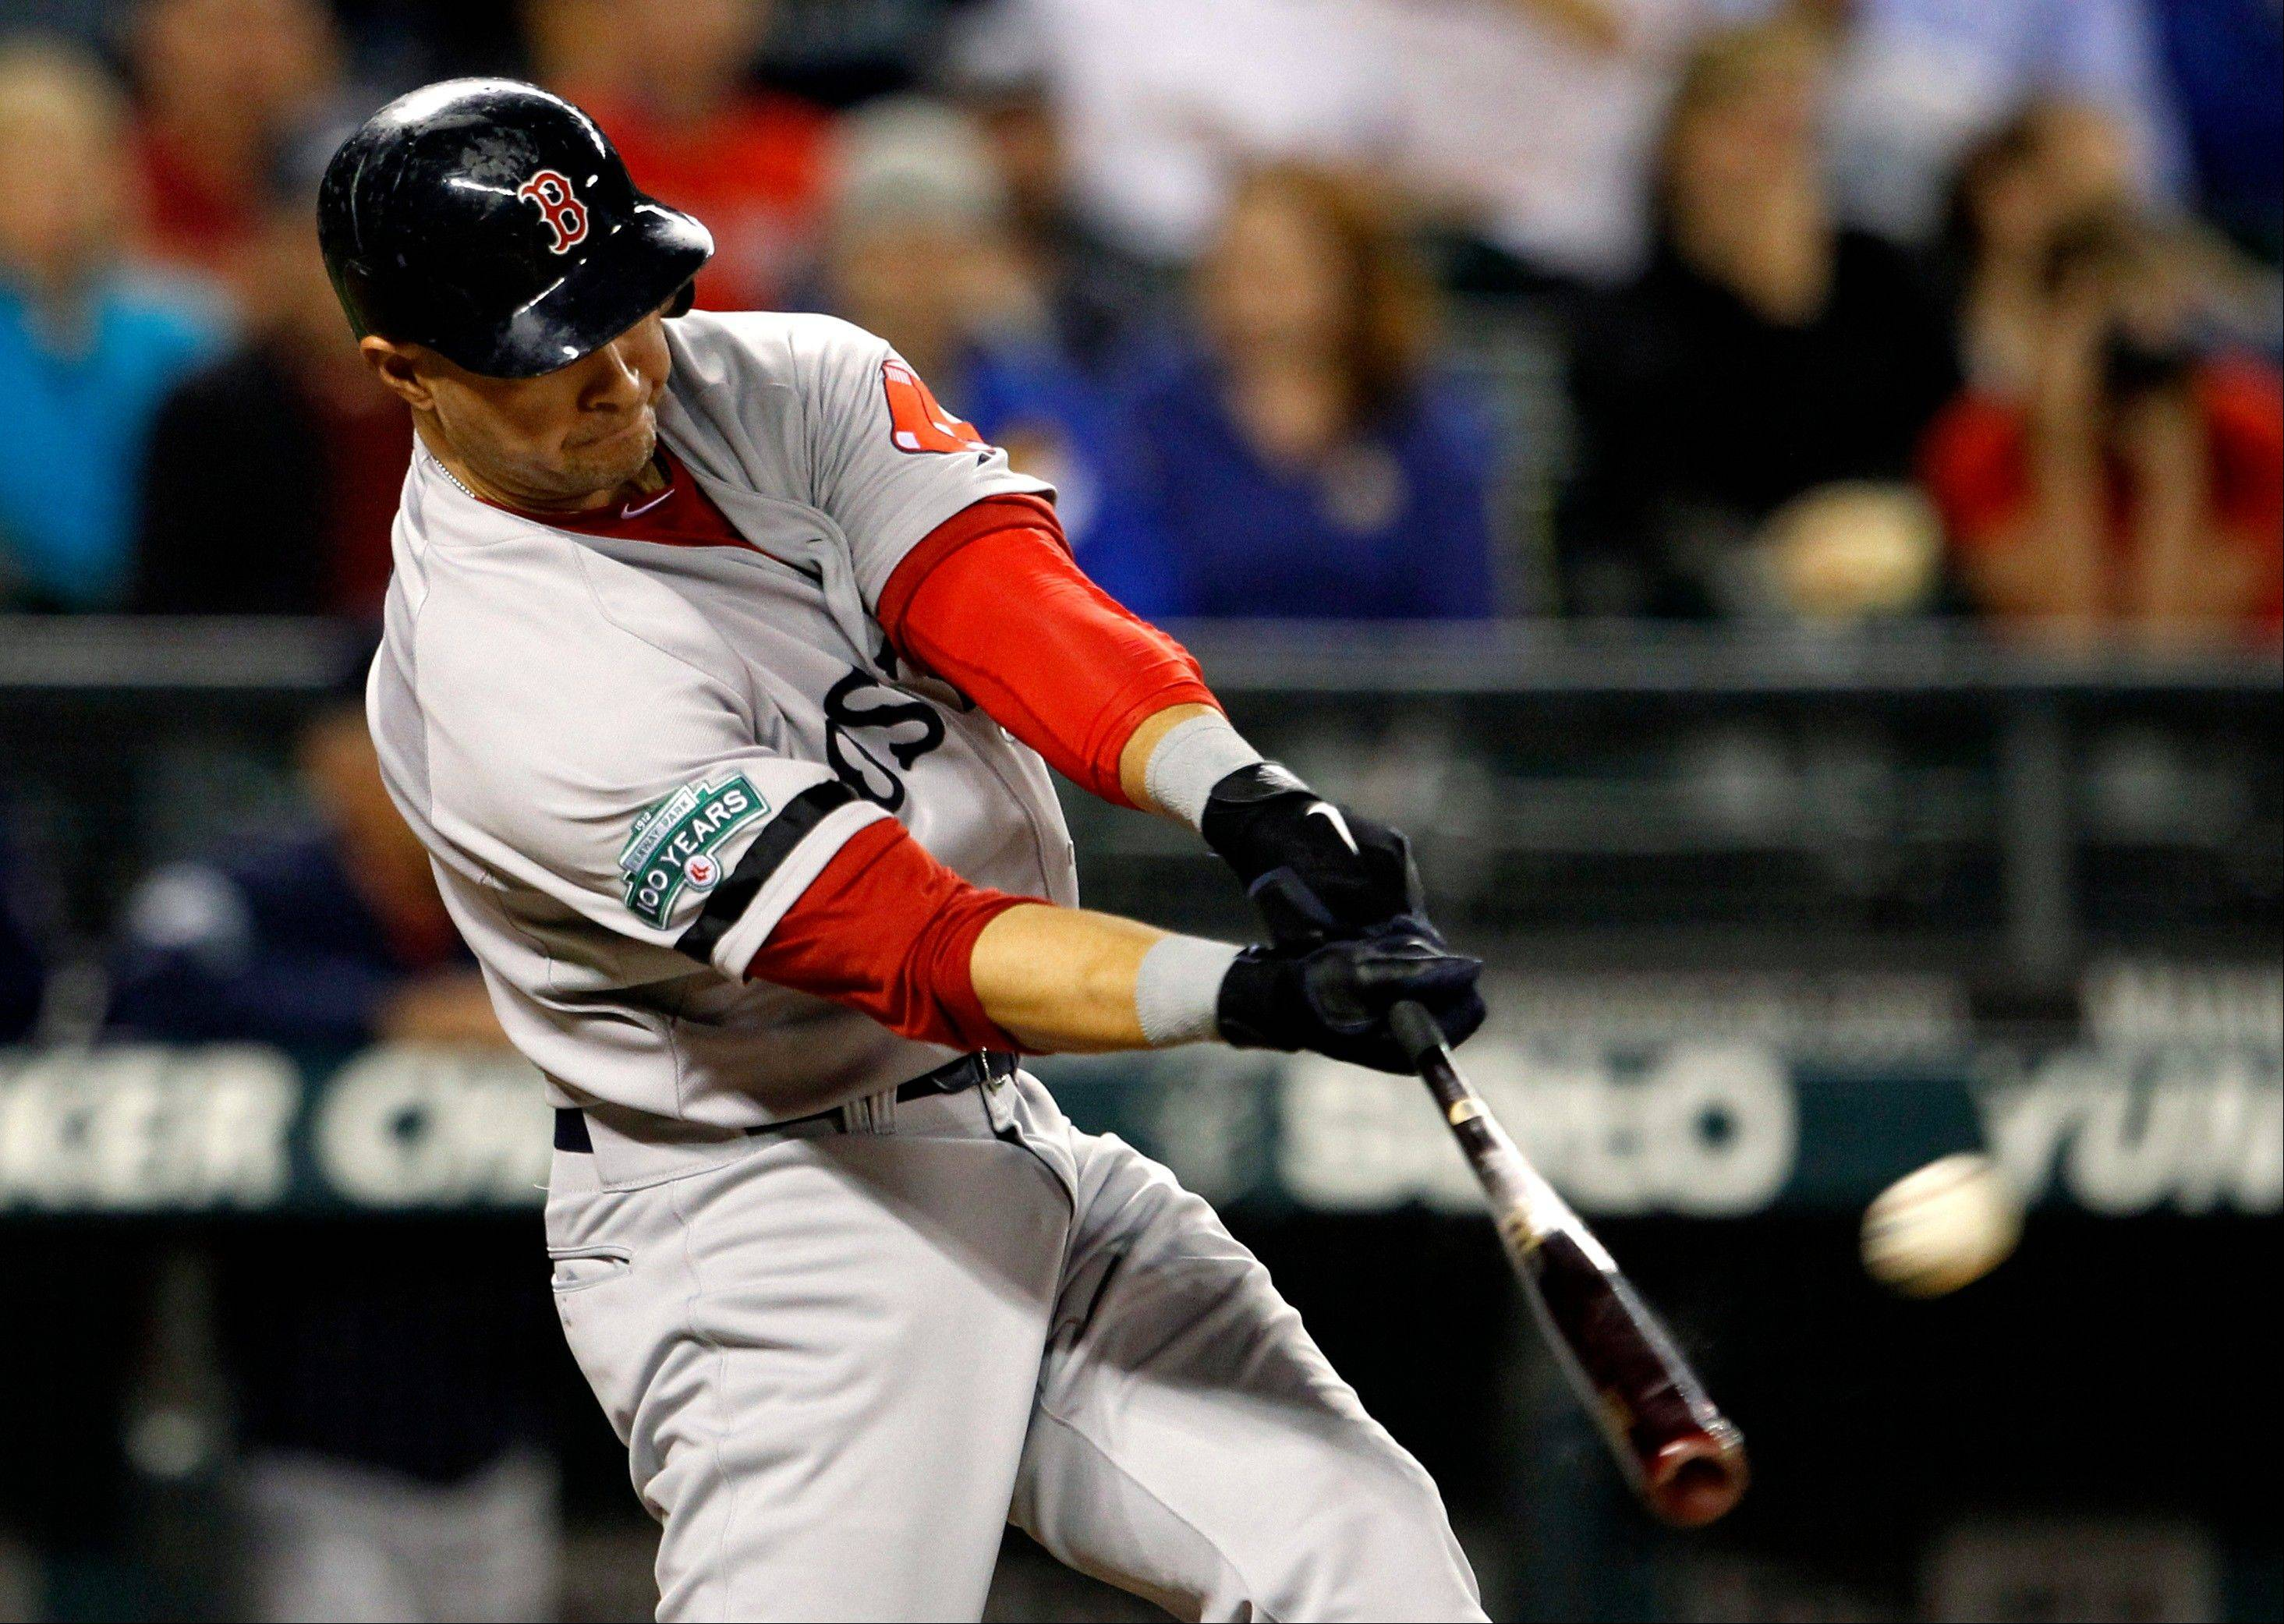 Boston's Cody Ross connects on a three-run home run against the Mariners in the sixth inning Tuesday in Seattle.